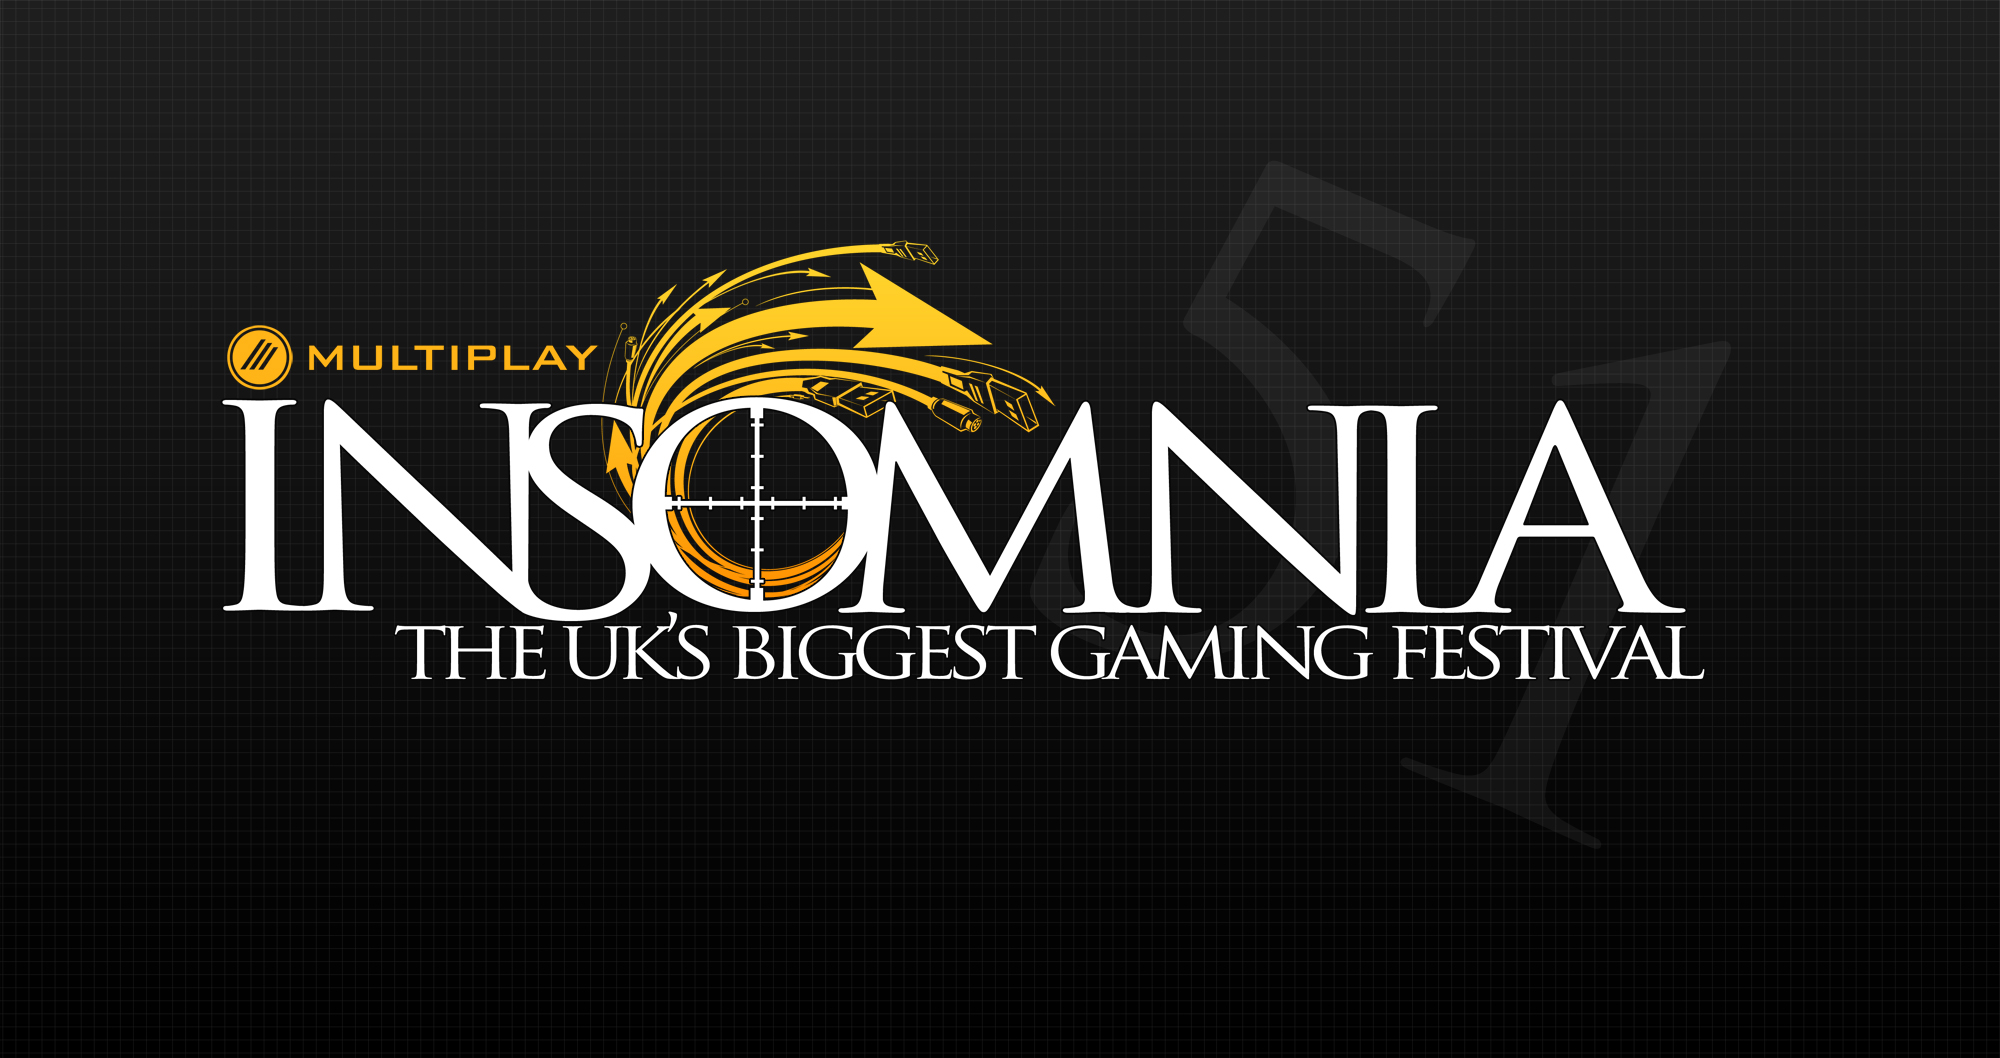 The Largest UK Gaming Festival Insomnia 51 Preview, What to Do and Who to See